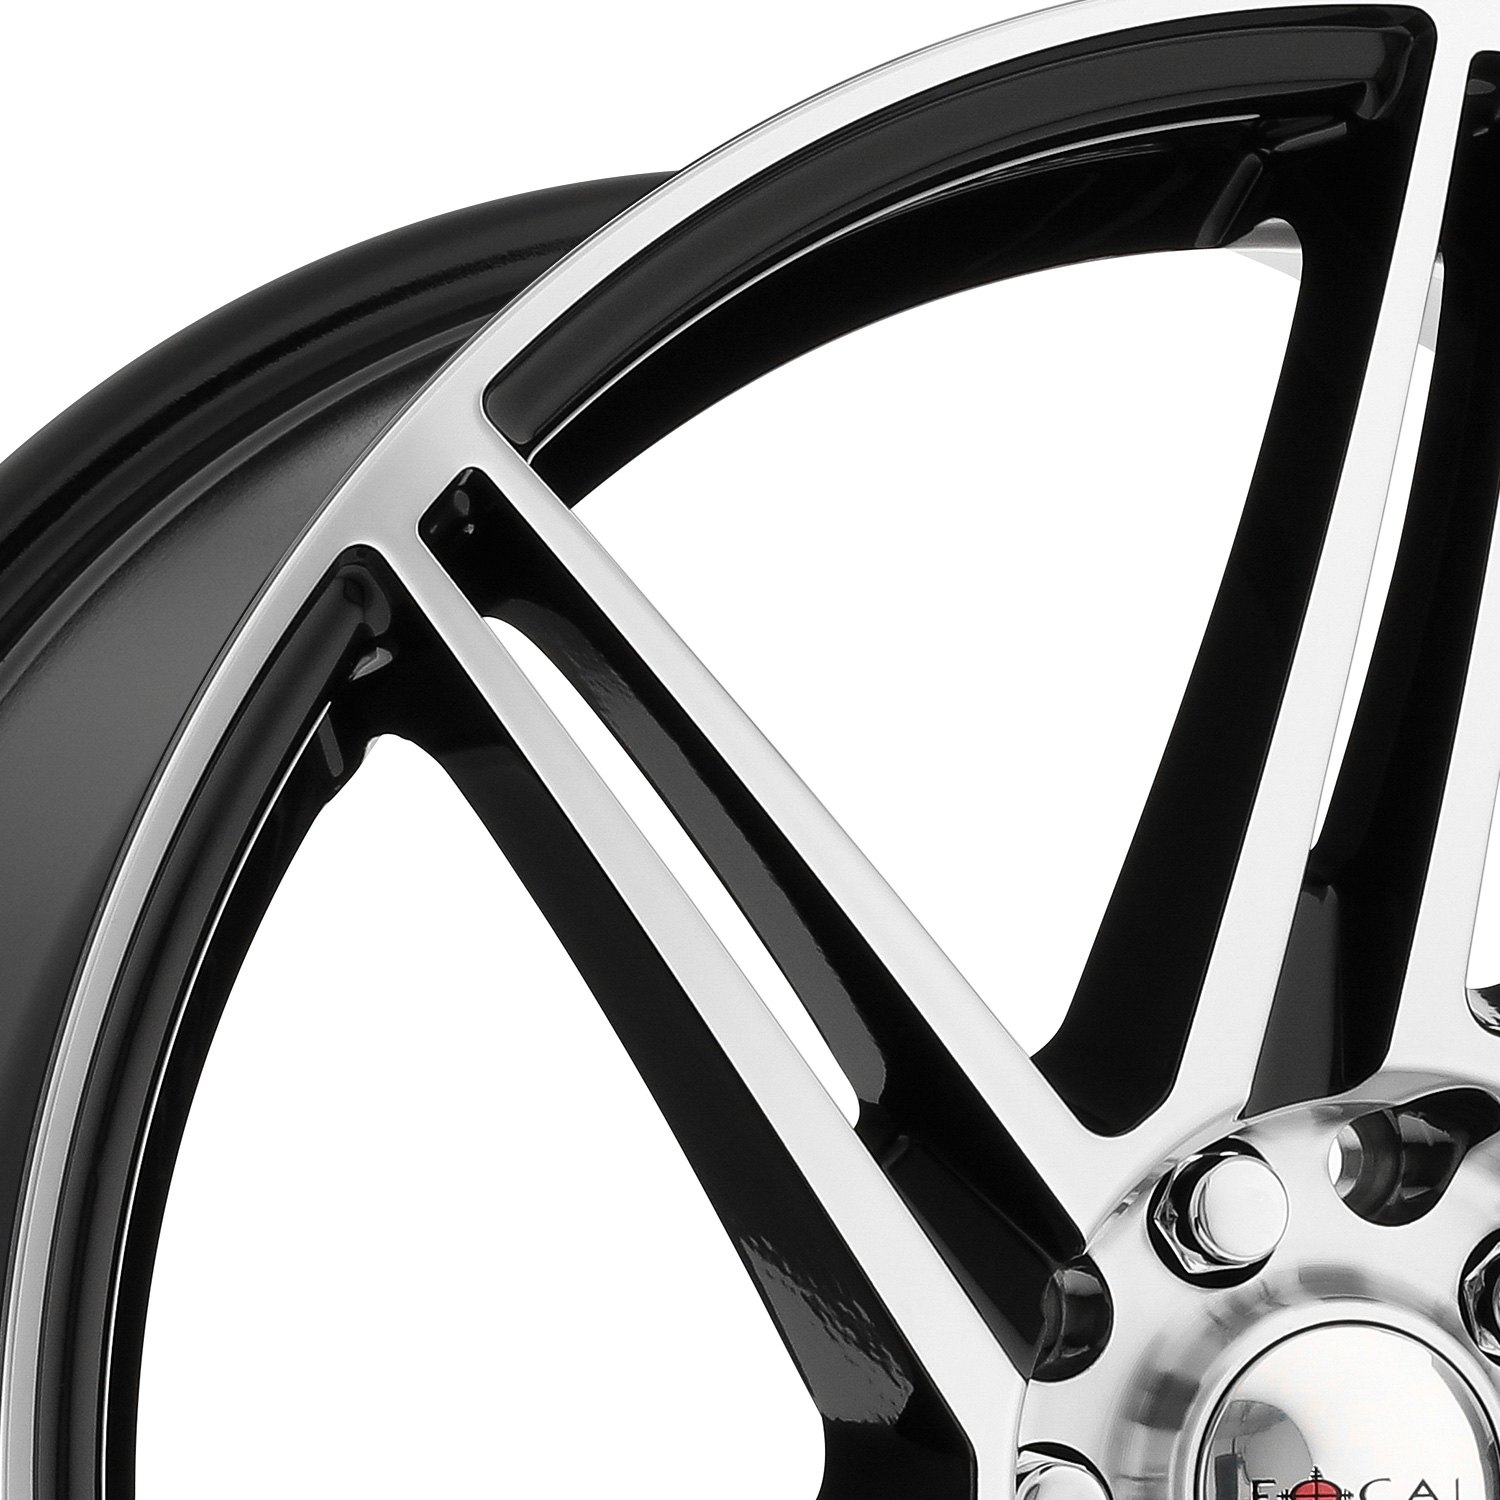 Focal 174 449u F 14 Wheels Gloss Black With Diamond Cut